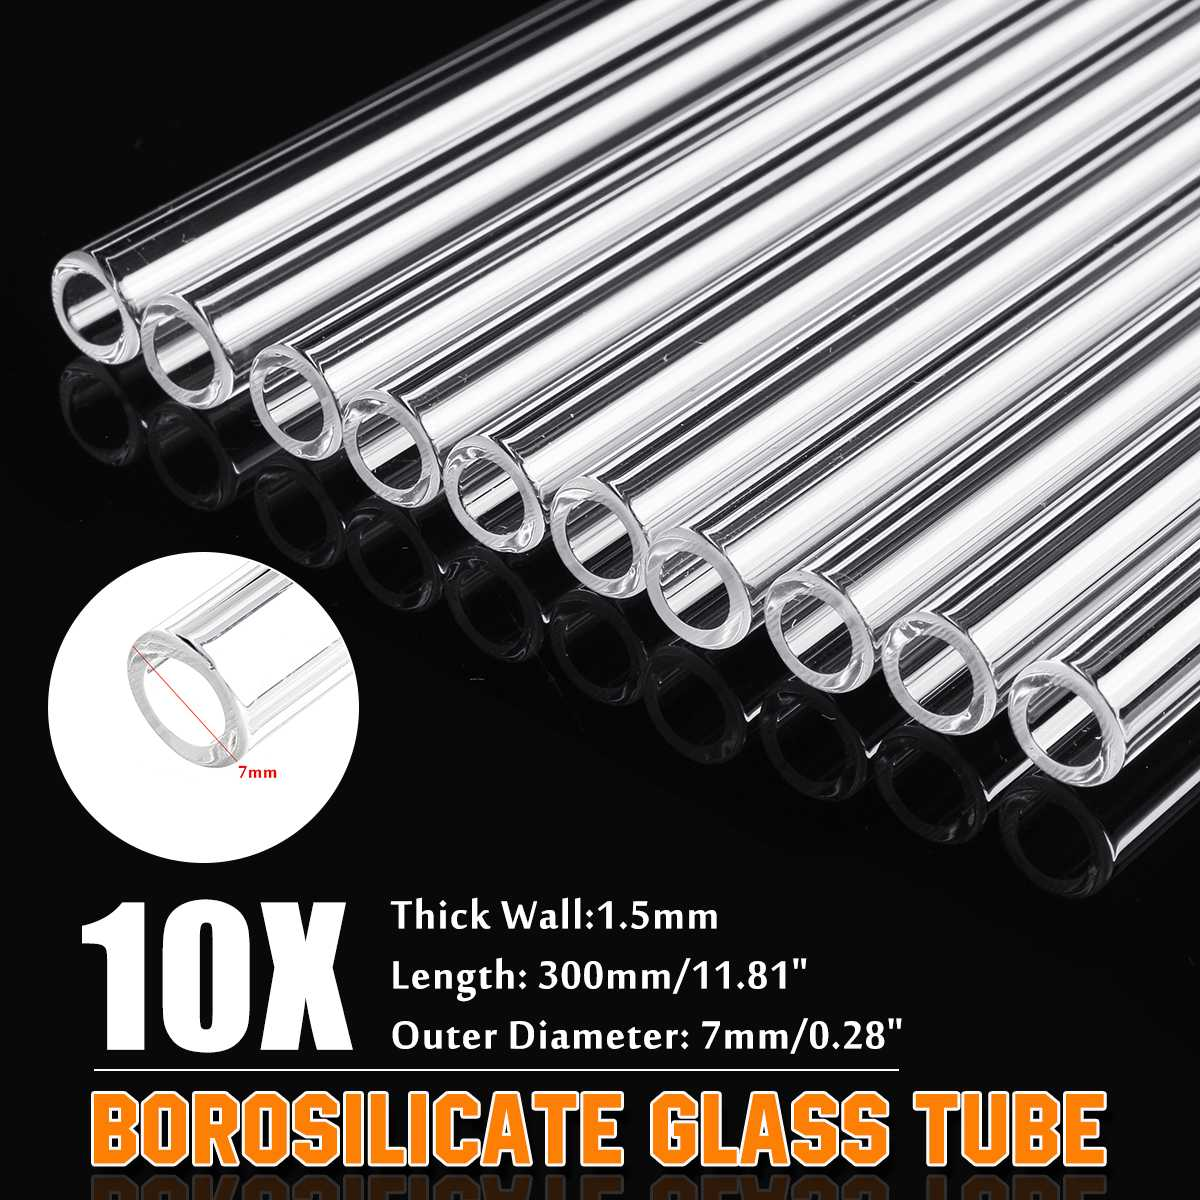 Lab Glass Blowing Tube 10Pcs 300mm OD 7mm 1.5mm Wall Borosilicate Glass Blowing Tube Lab Tubing School Factory Laboratory